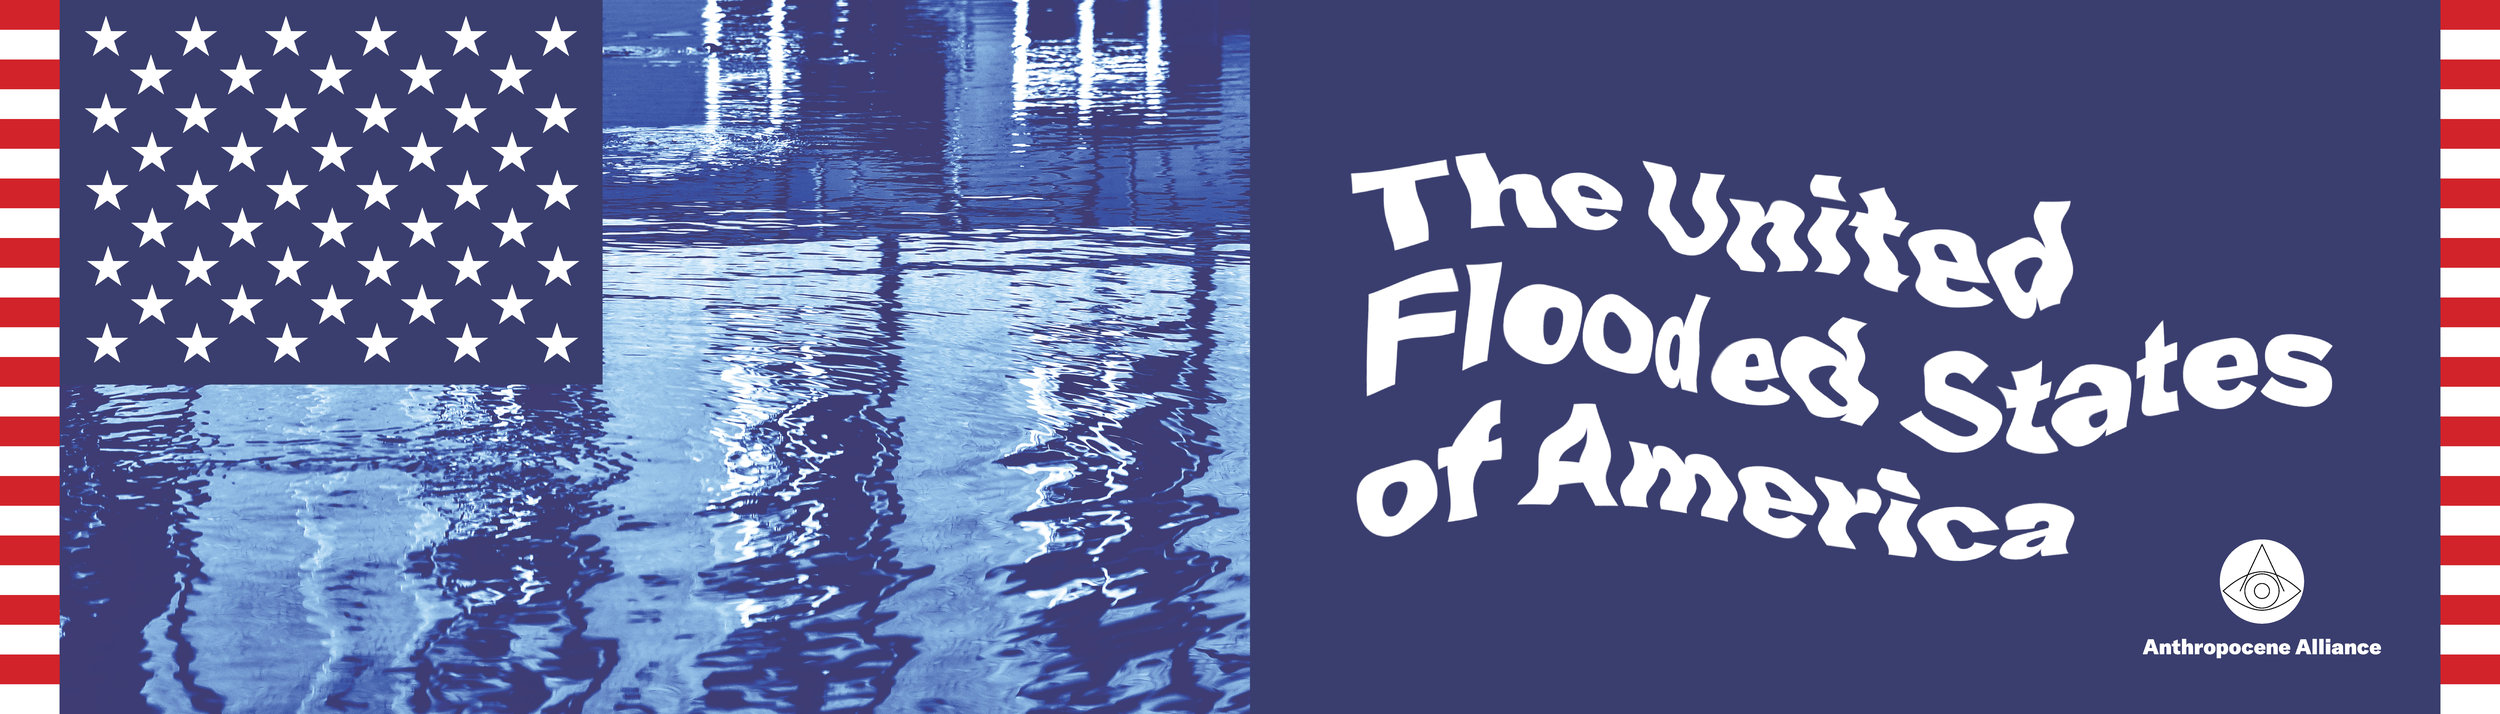 Banner for the United Flooded States of America campaign.